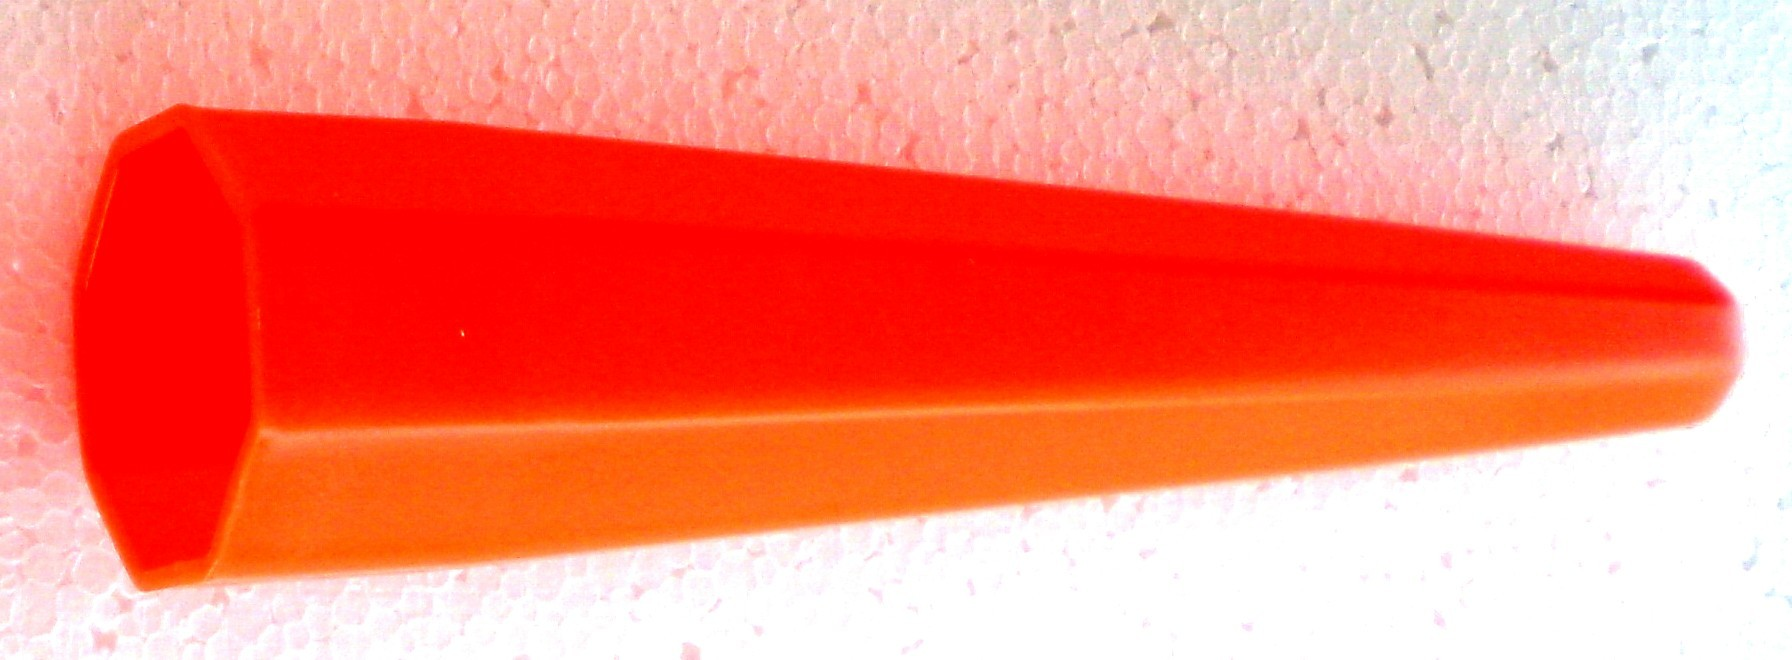 Pelican traffic orange wand for marshaling aircraft and for Wand orange